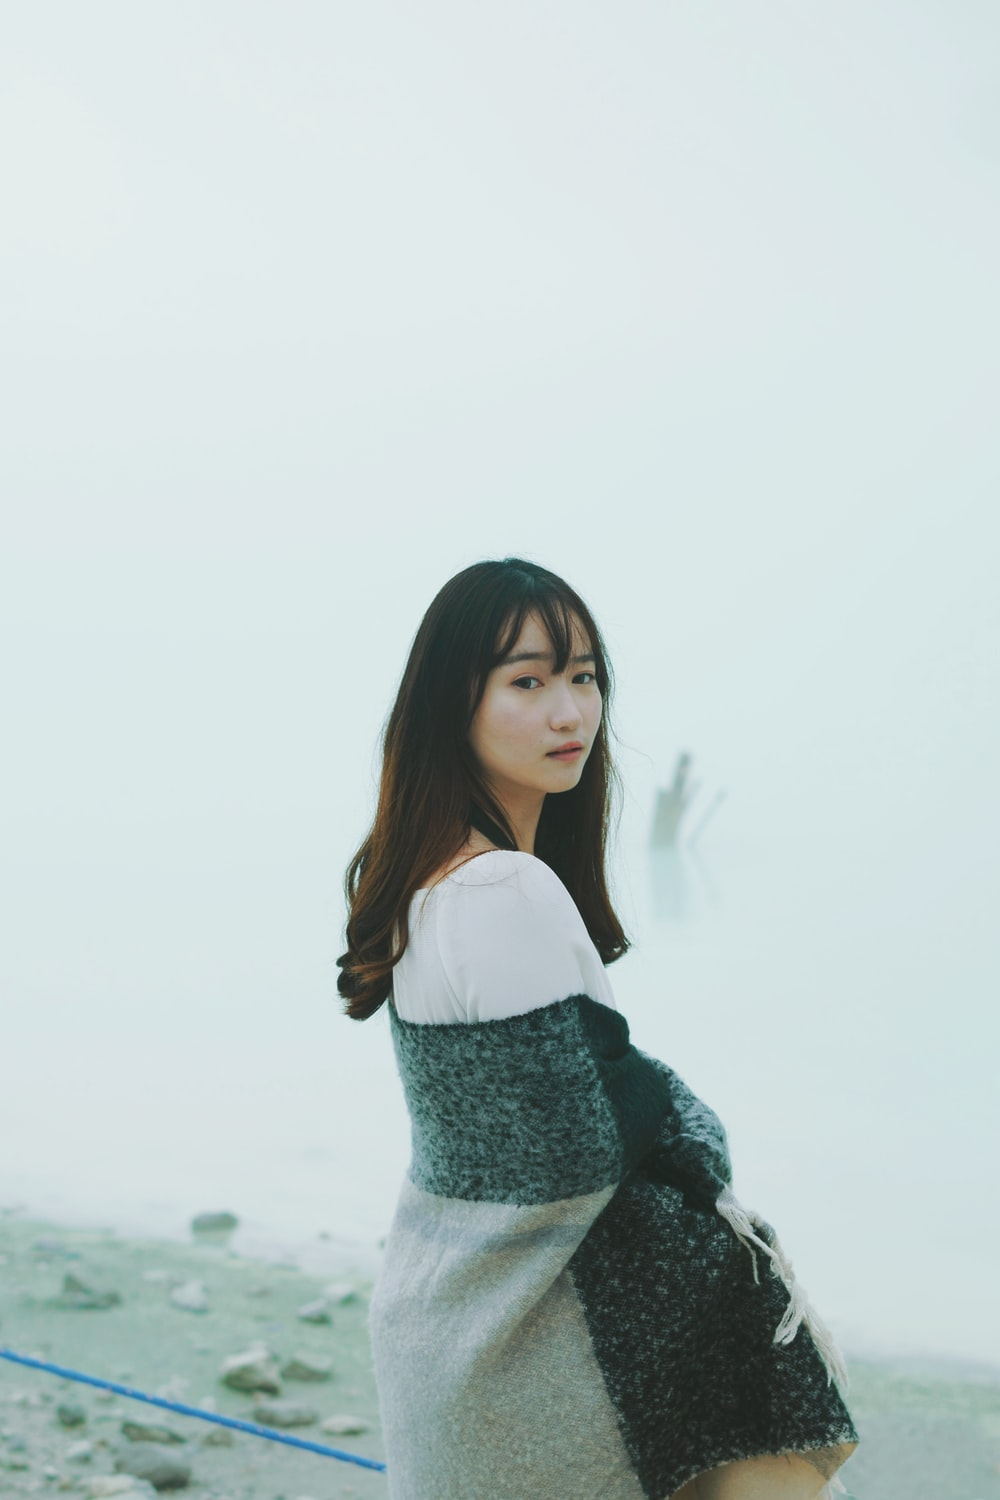 100+ Indonesian Girl Pictures | Download Free Images on Unsplash